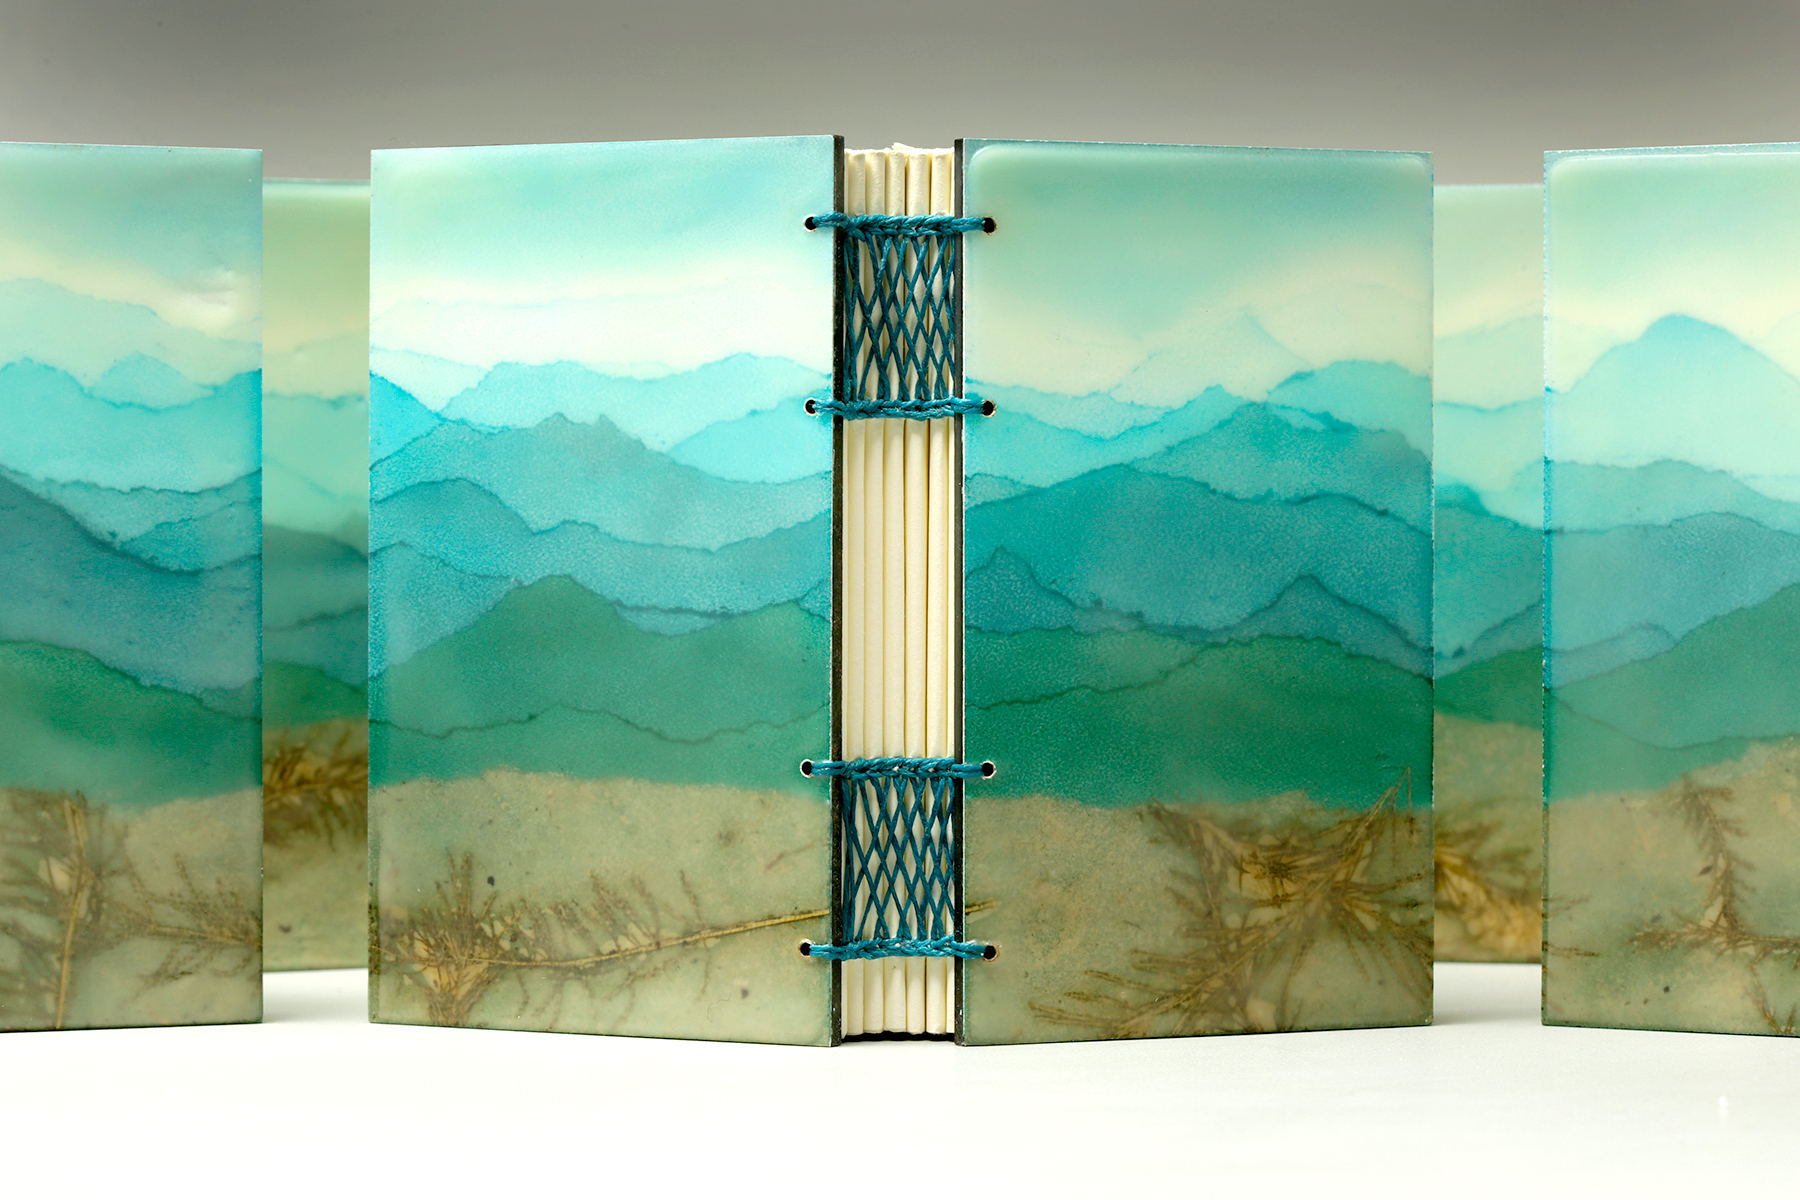 Blue Ridge Mountains by Erin Keane : panoramic landscape : encaustic beeswax covers